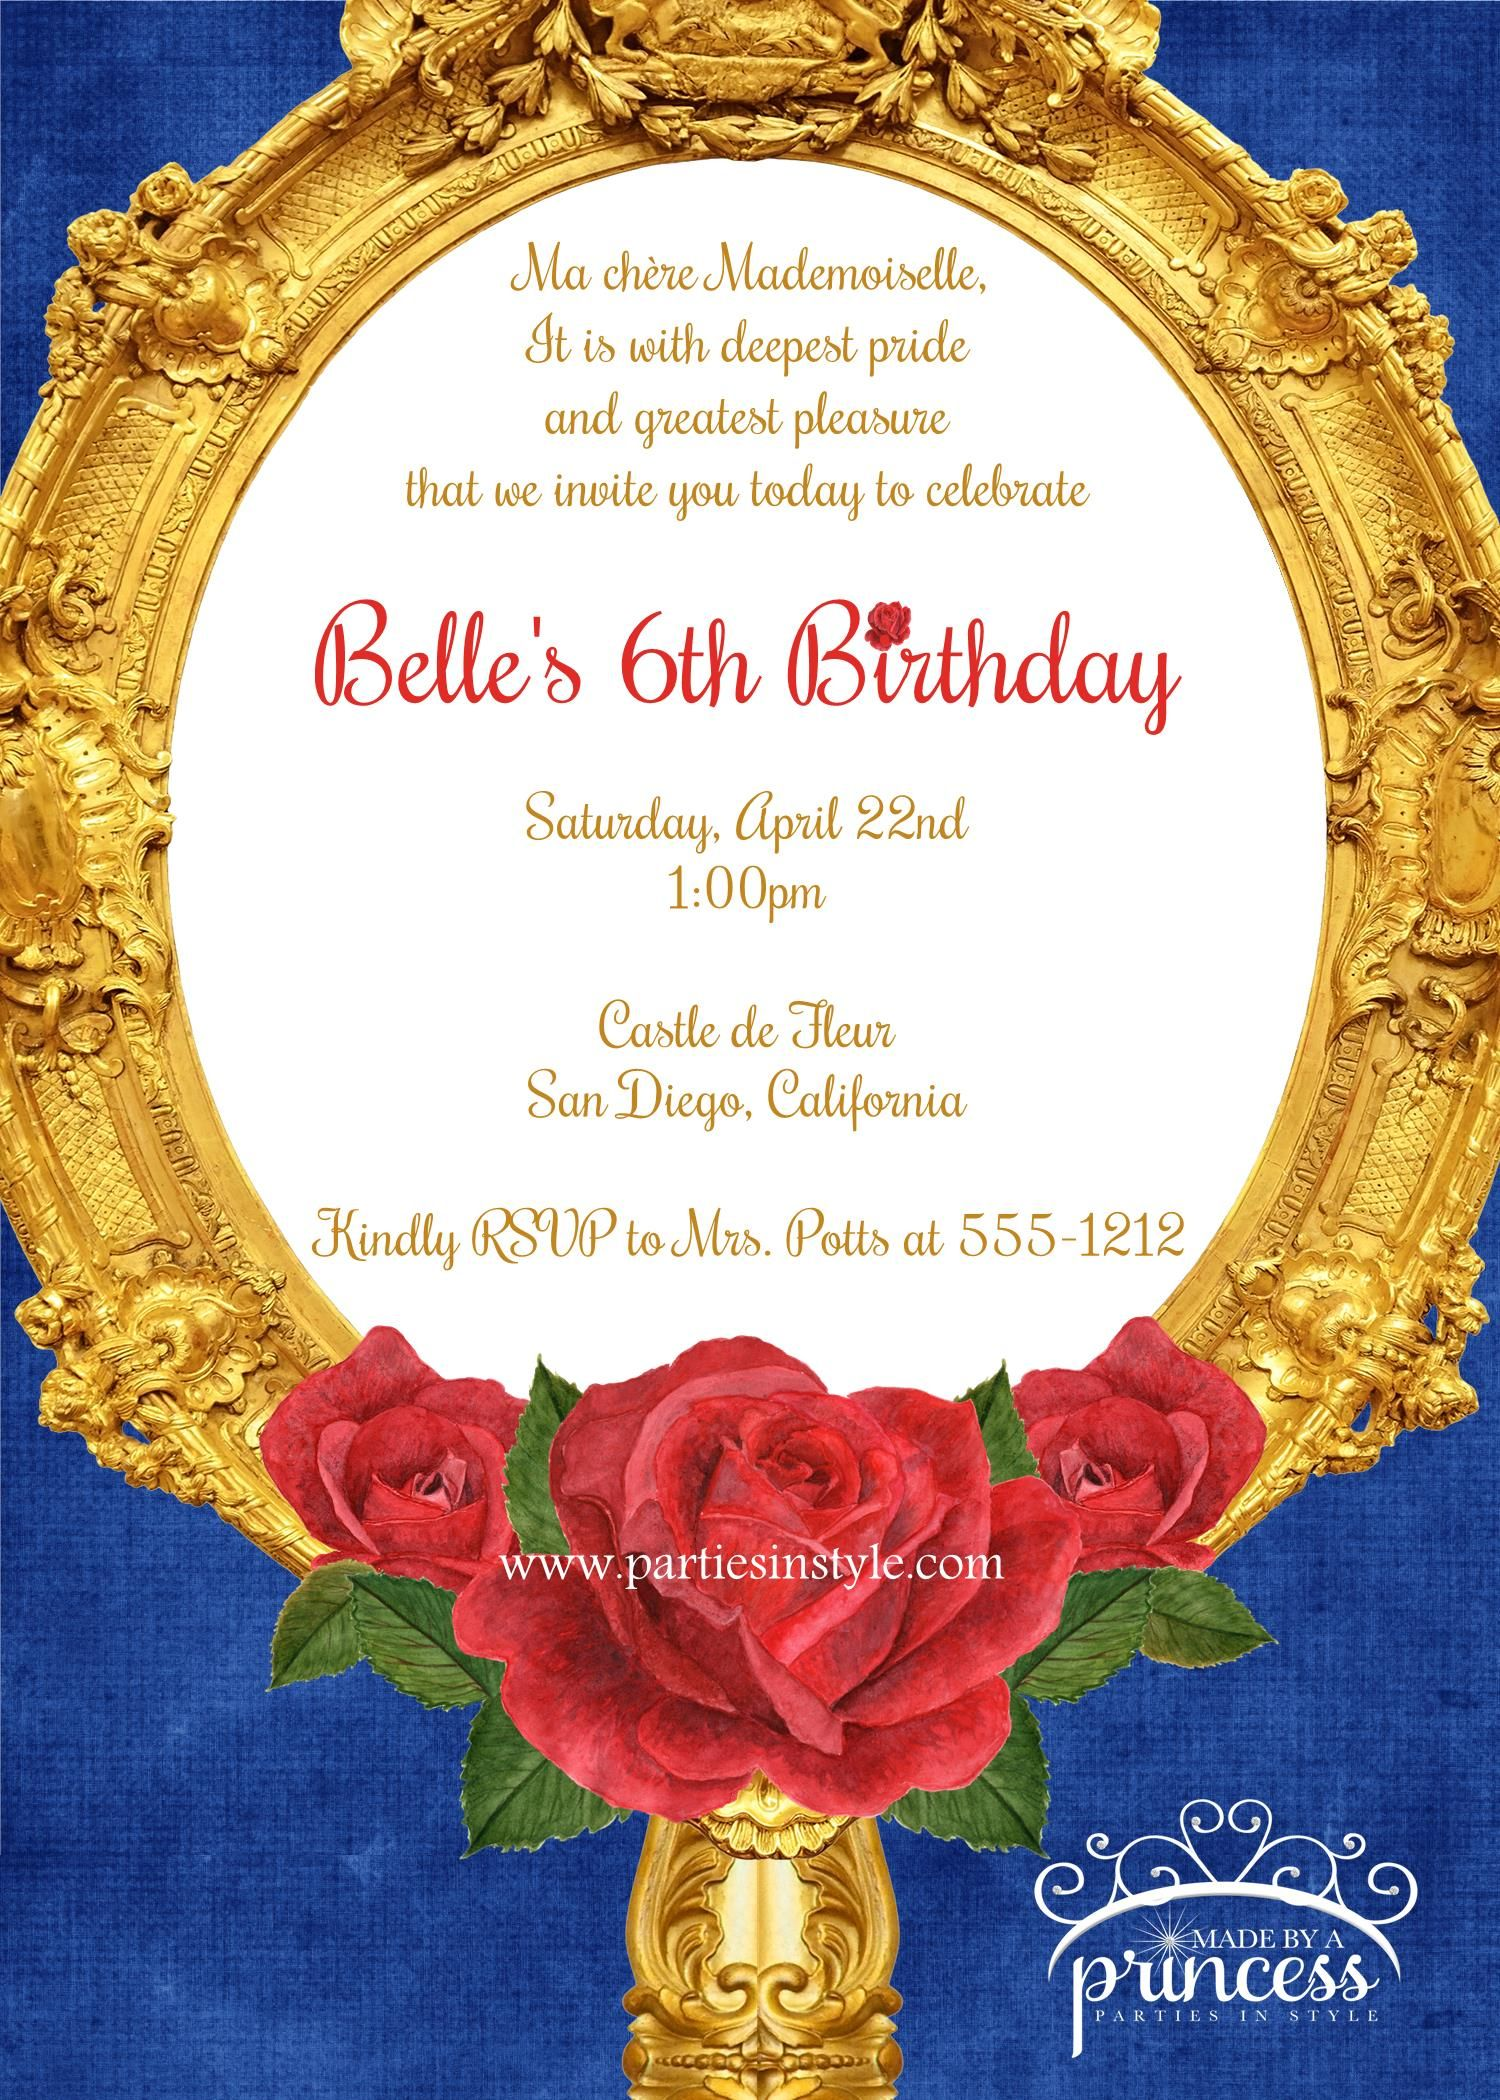 Beauty And The Beast Inspired Birthday Party Printable